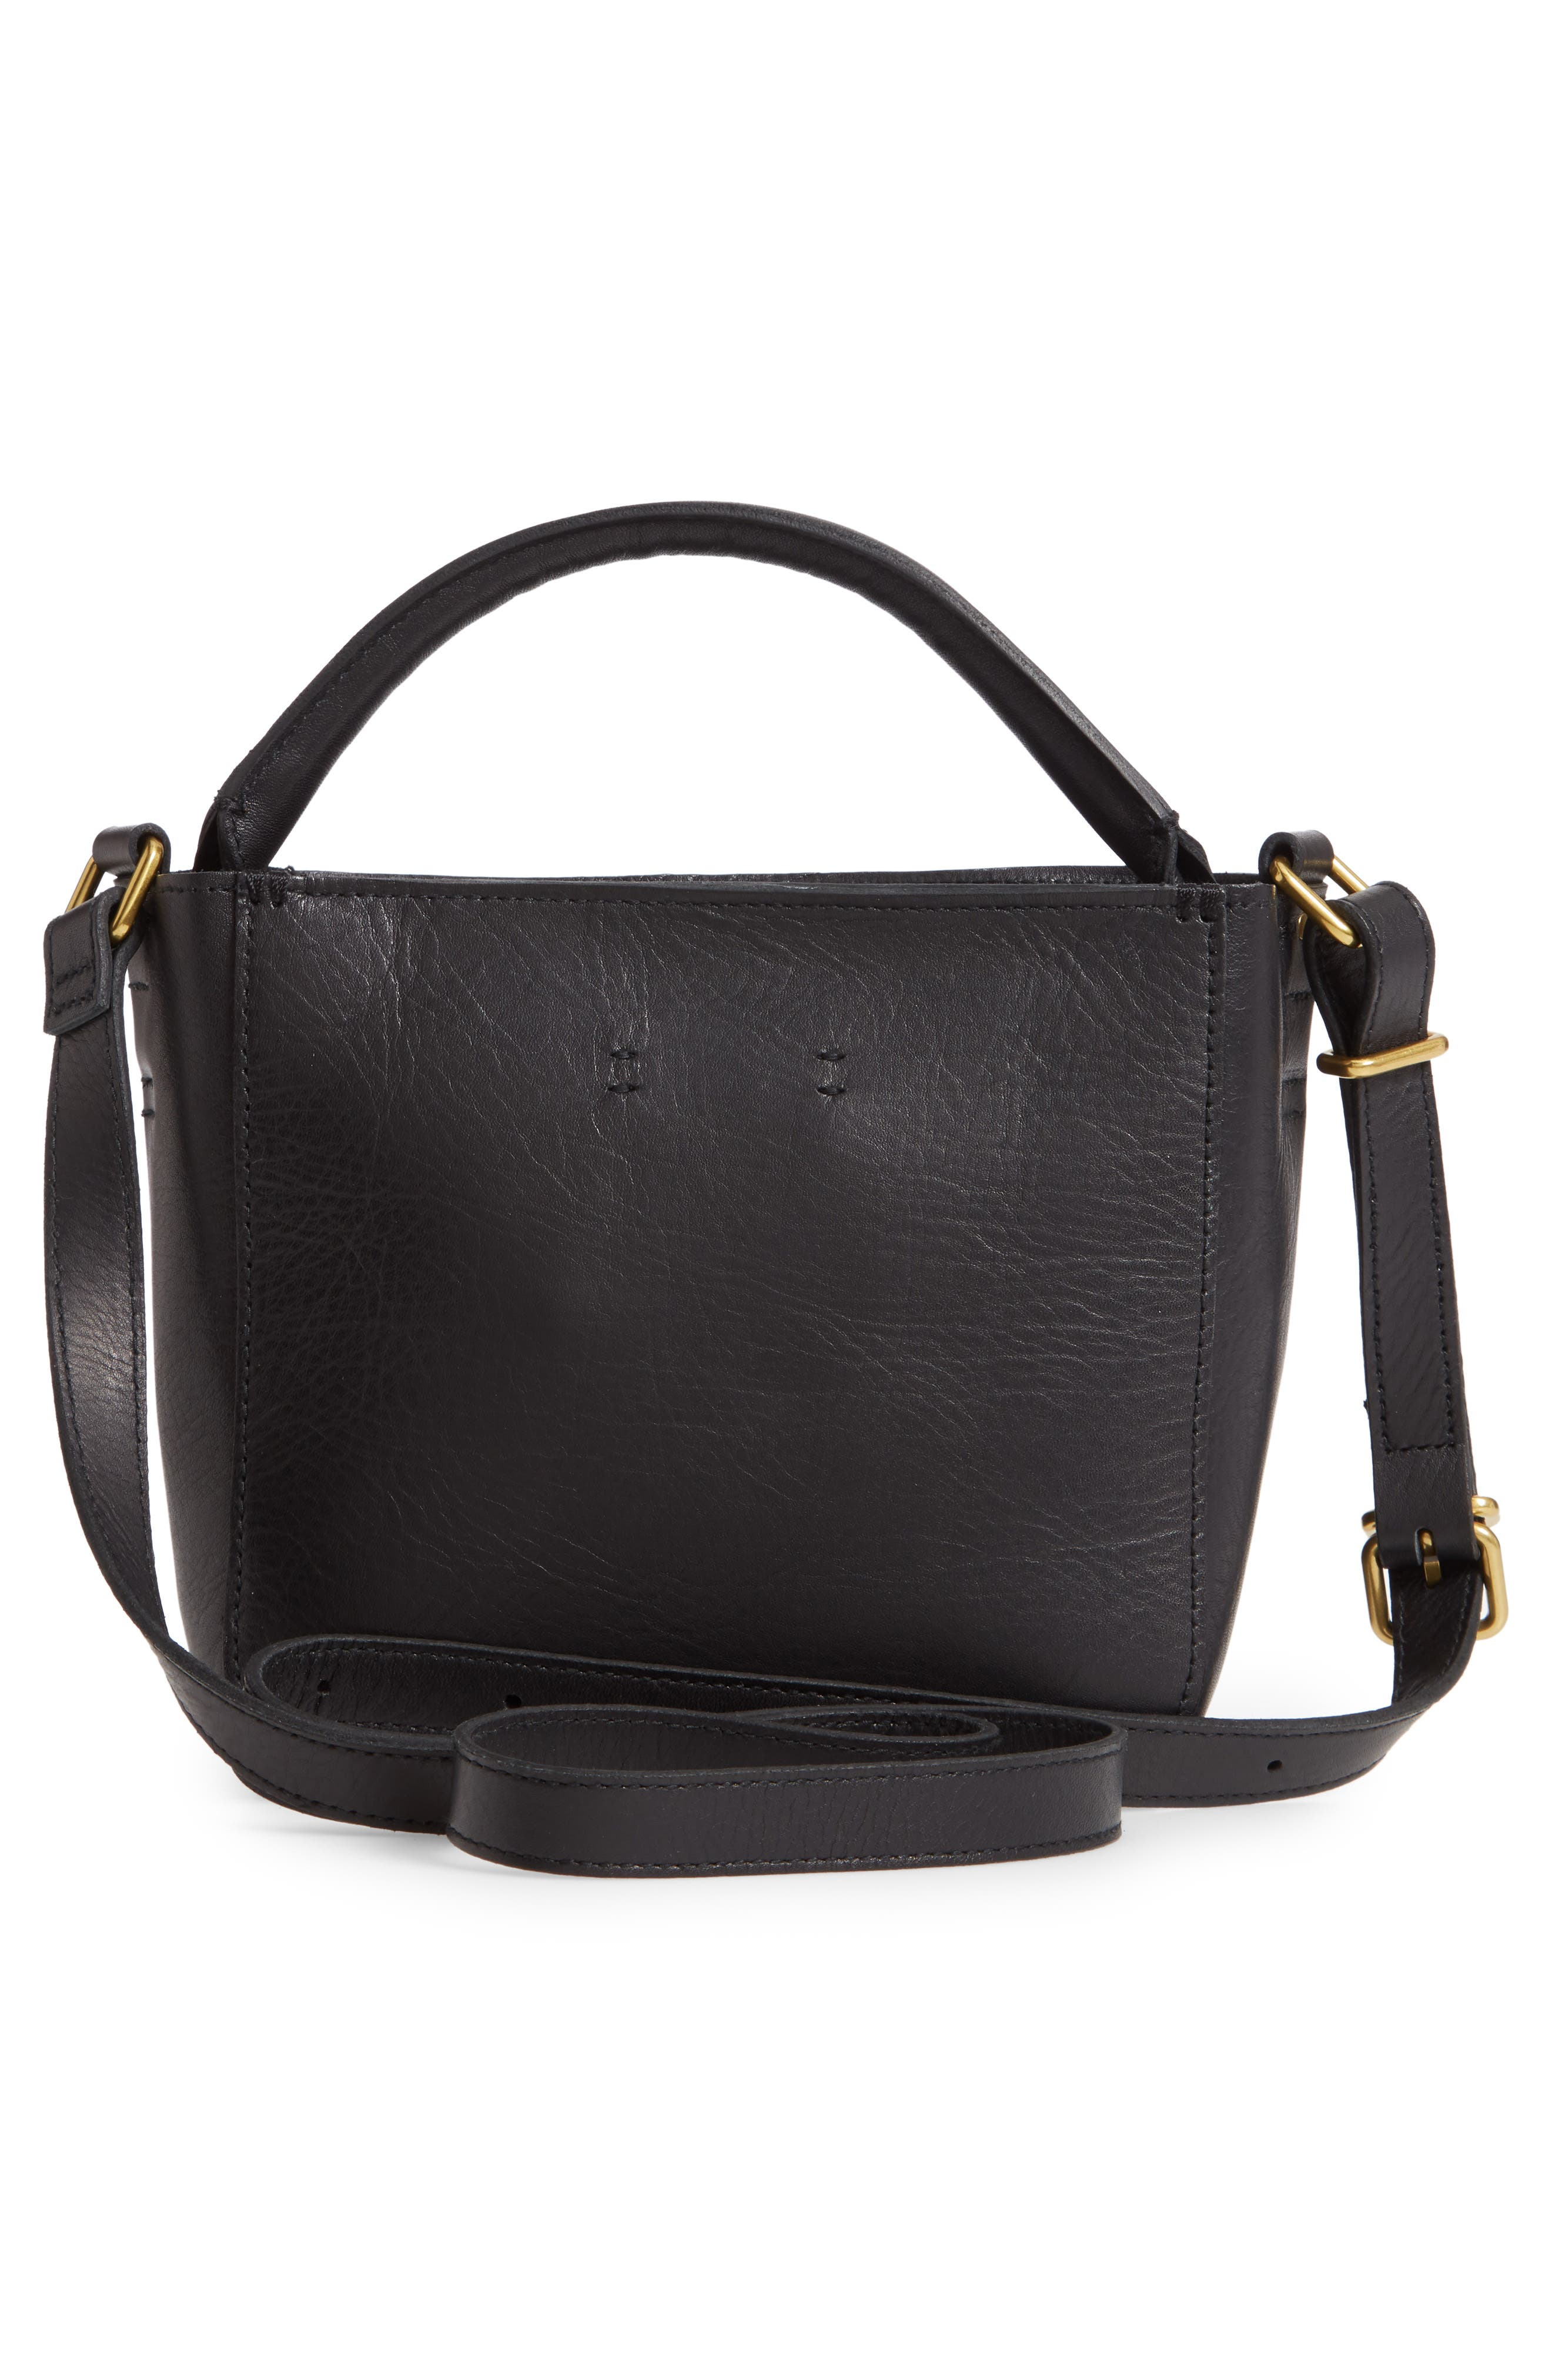 MADEWELL, The Mini Abroad Leather Crossbody Bag, Alternate thumbnail 3, color, TRUE BLACK